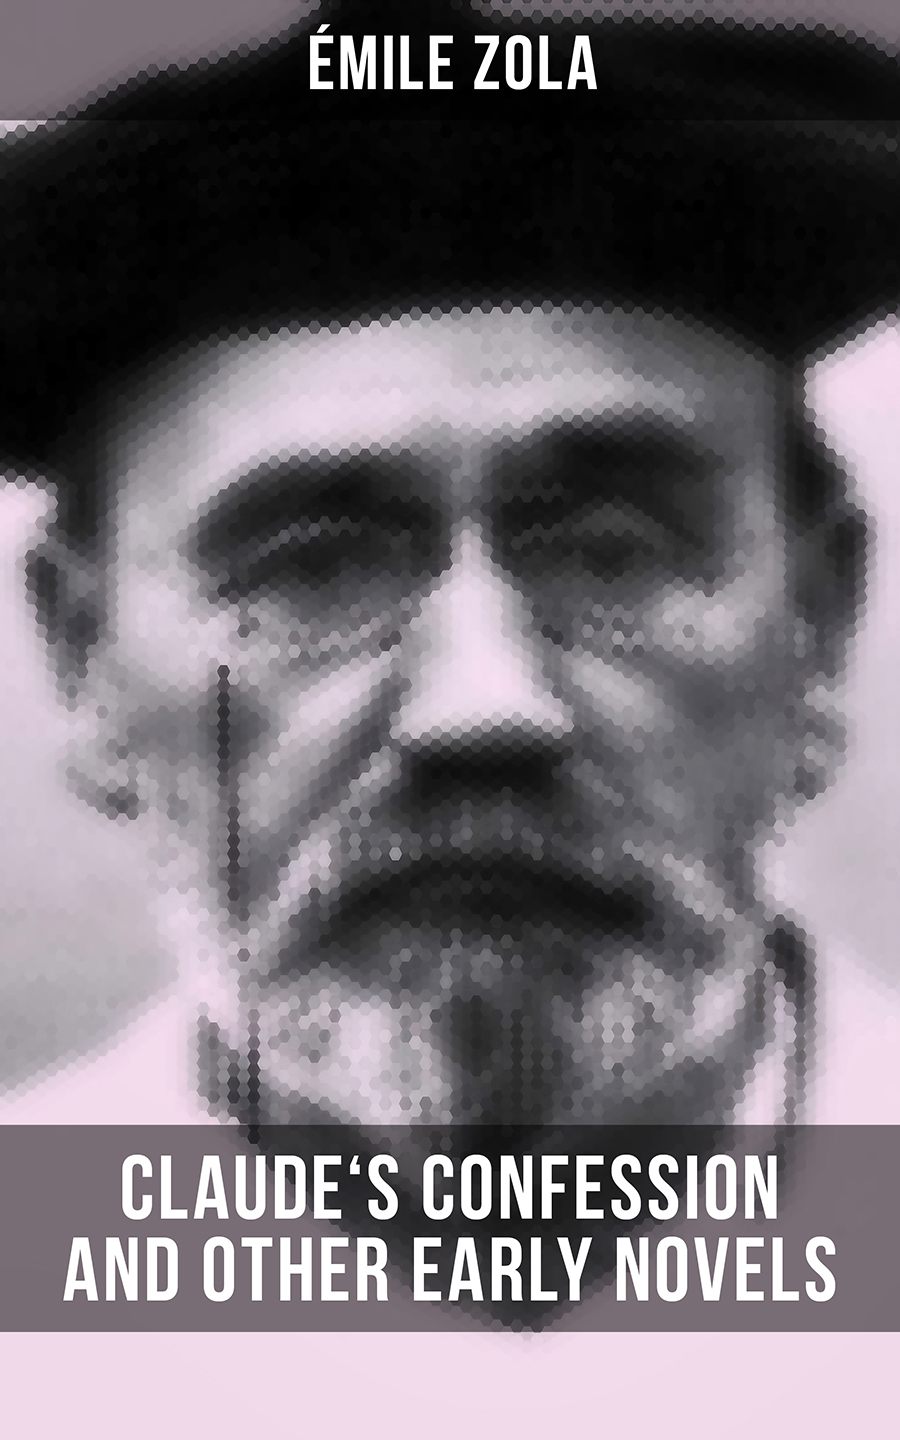 claudes confession and other early novels of emile zola